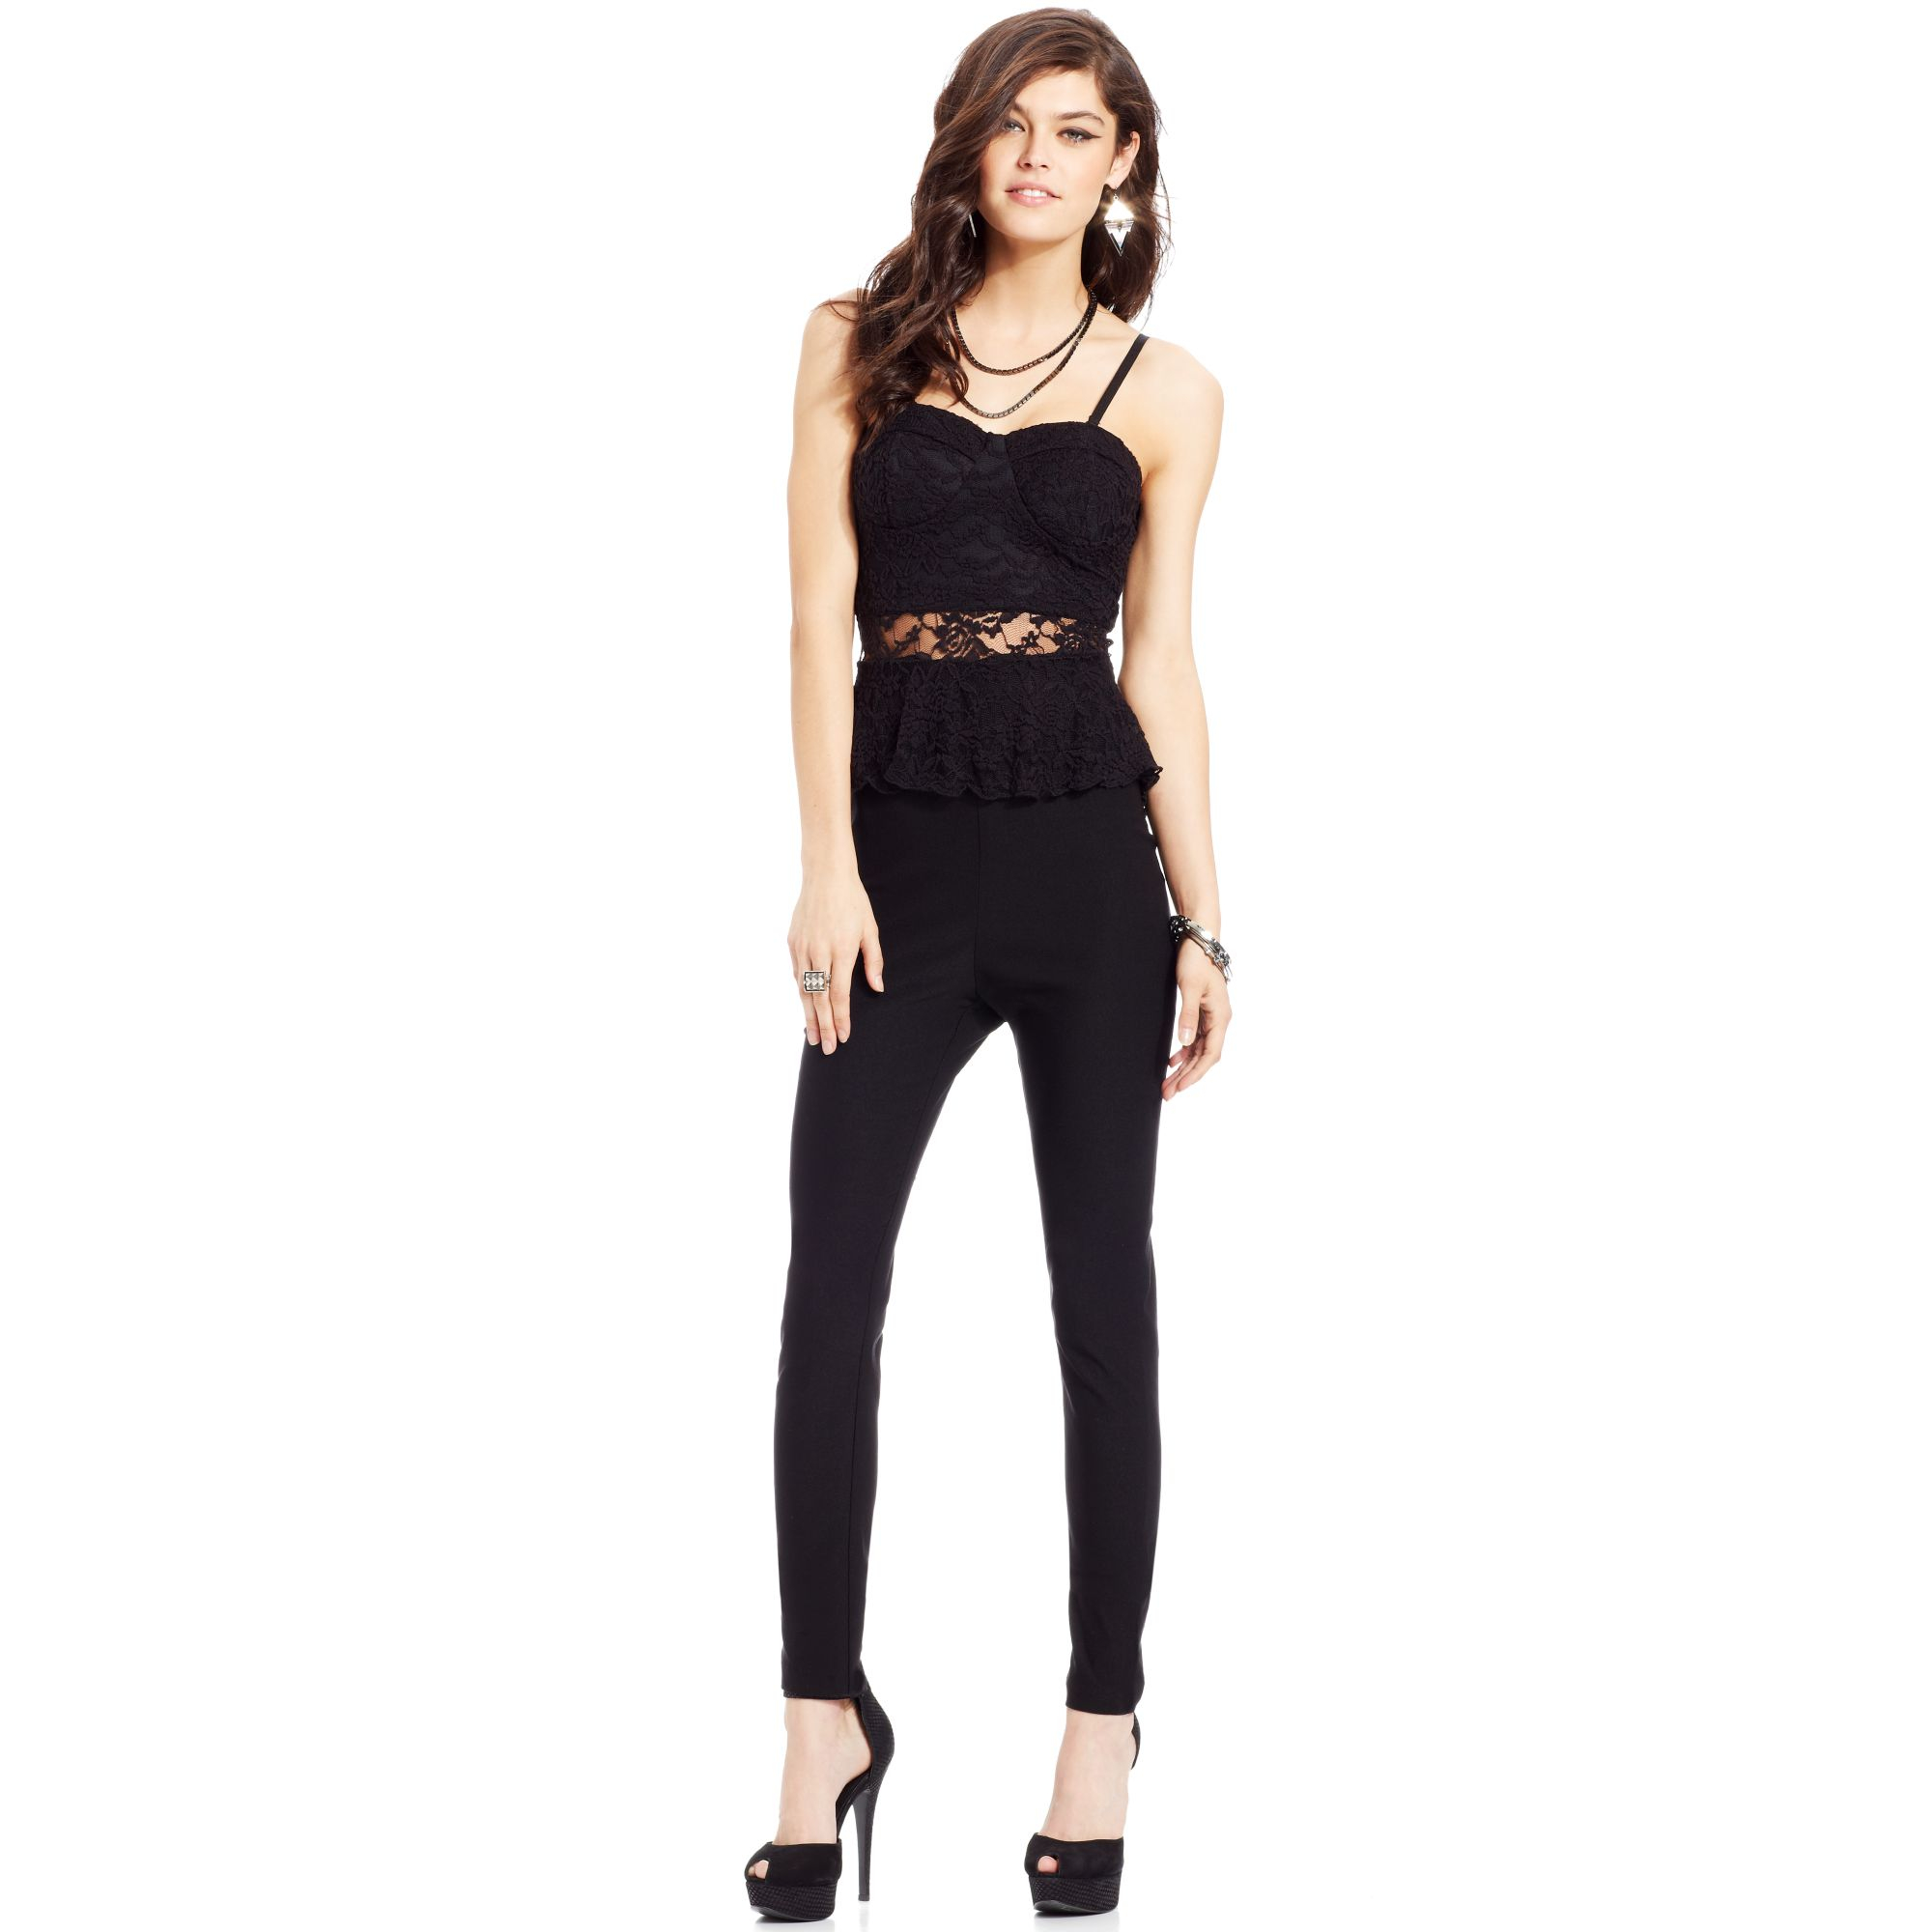 jumpsuits + rompers Sexy clubbing jumpsuits and rompers: Buy online sexy Jumpsuits & Rompers, hot cheap white and black Jumpsuits & Rompers for women, great deals and low prices at mediacrucialxa.cf Featured Price, low to high Price, high to low Alphabetically, A-Z Alphabetically, Z-A Date, old to new Date, new to old Best Selling.